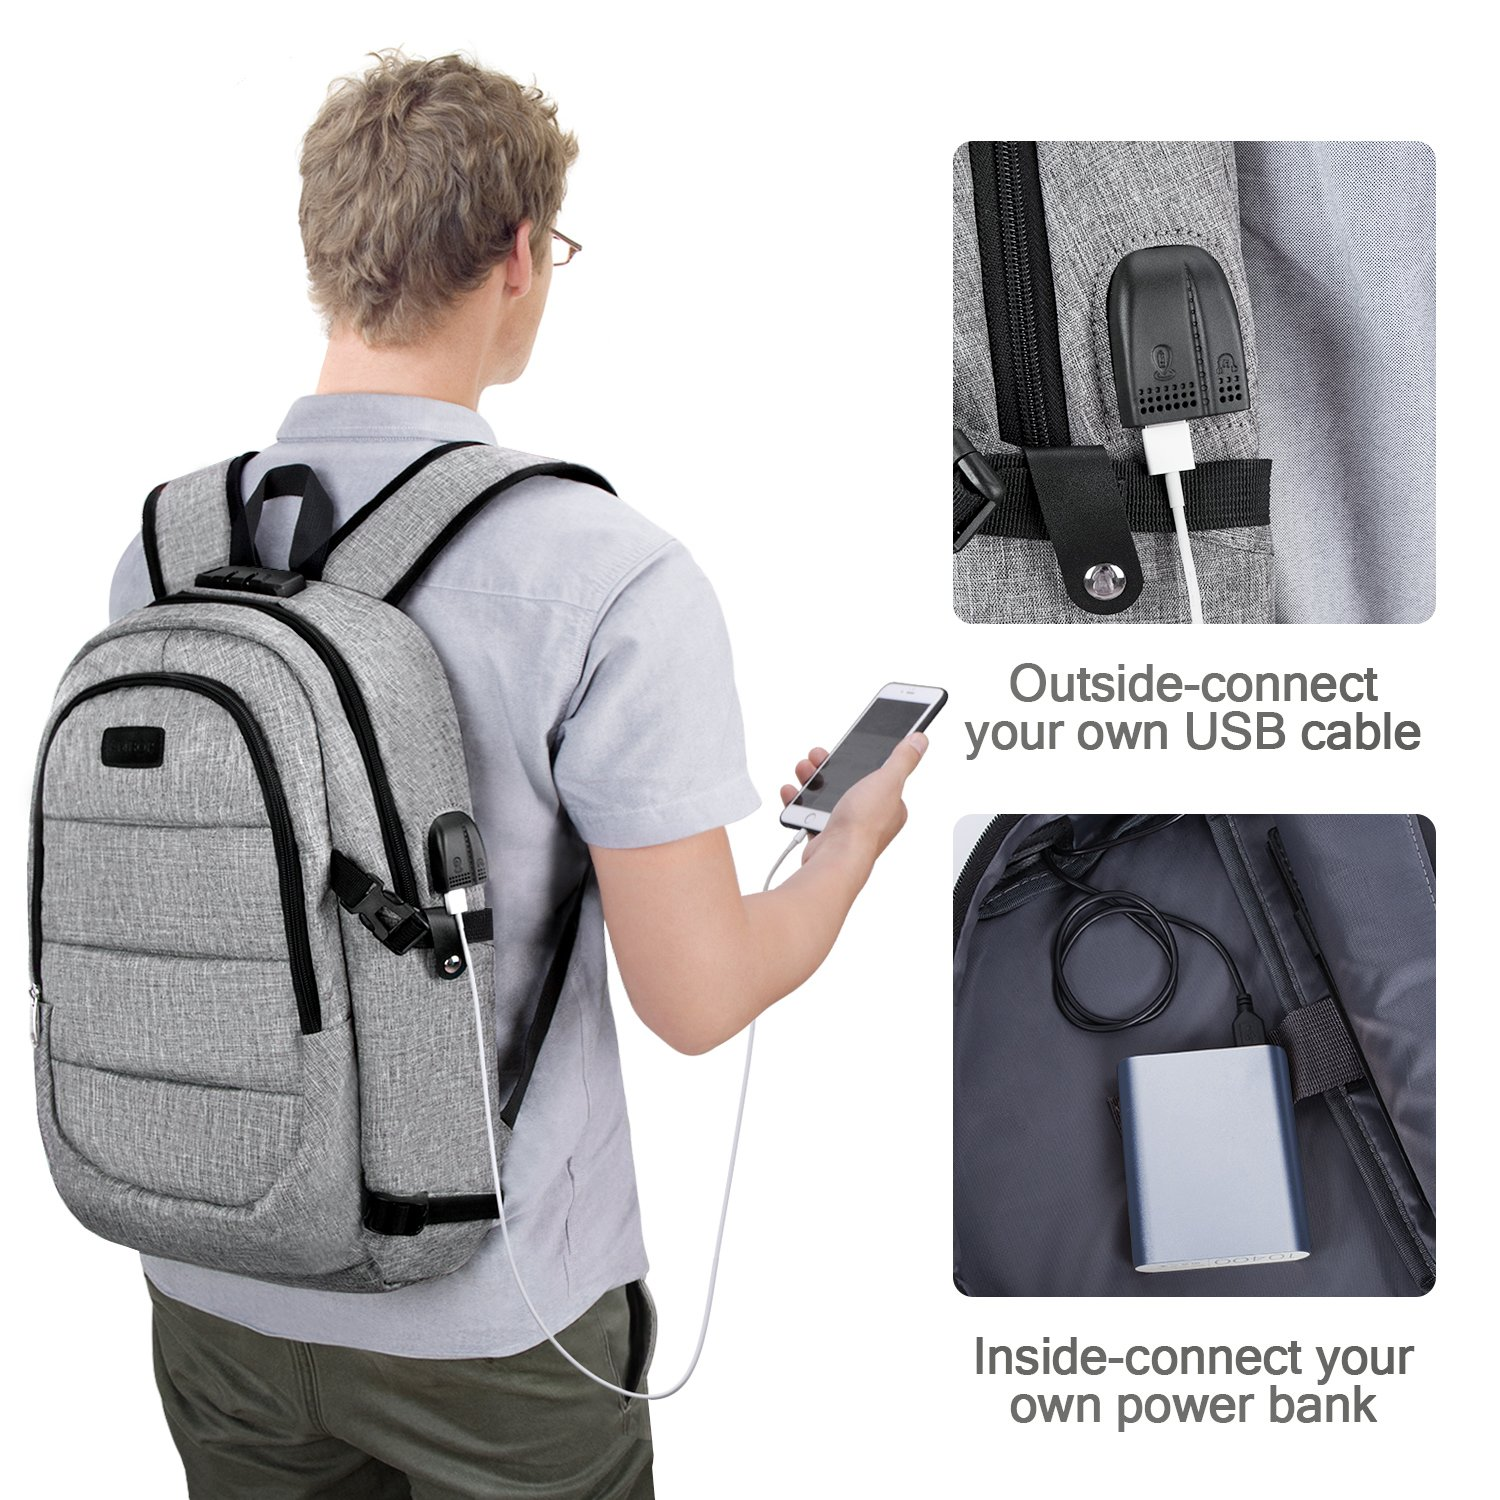 Travel Laptop Backpack,AMBOR Anti-Theft Business Laptop Backpack with USB Charging Port & Headphone Interface, Slim Durable College School Computer Bag for Men Women Fits 15.6 Inch Laptop and Notebook by AMBOR (Image #5)